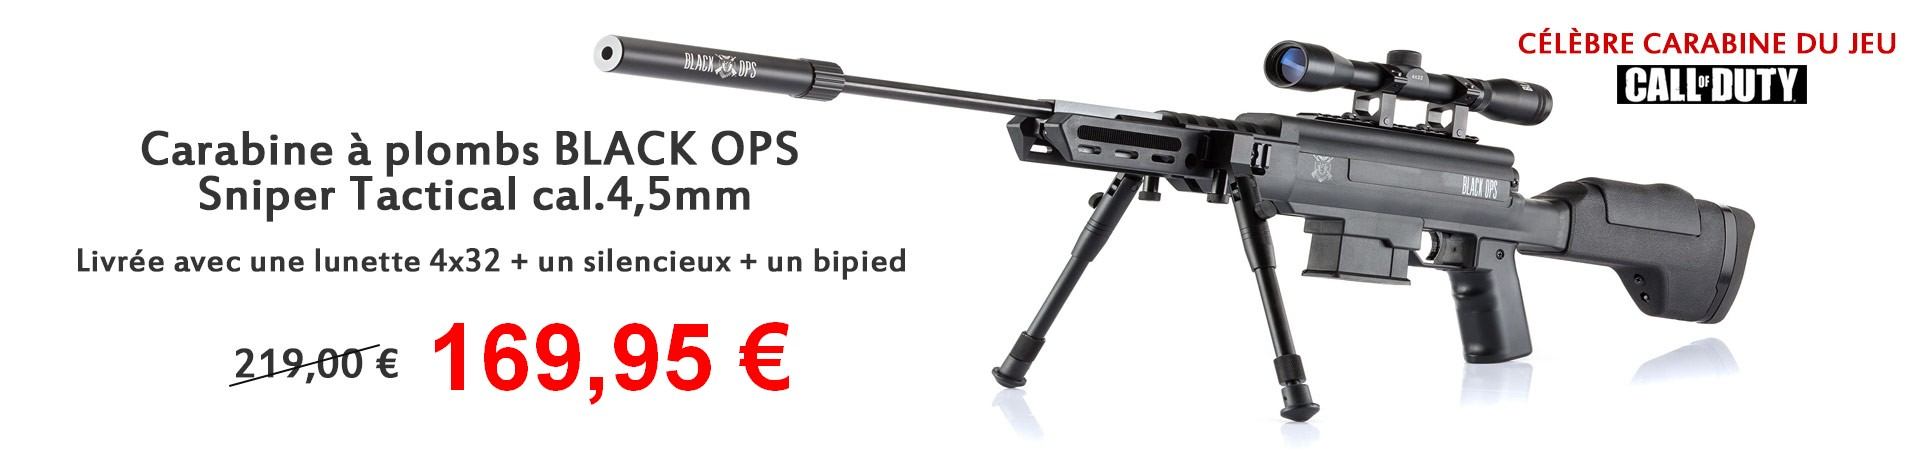 Carabine a plombs BLACK OPS Sniper Tactical cal.4,5mm